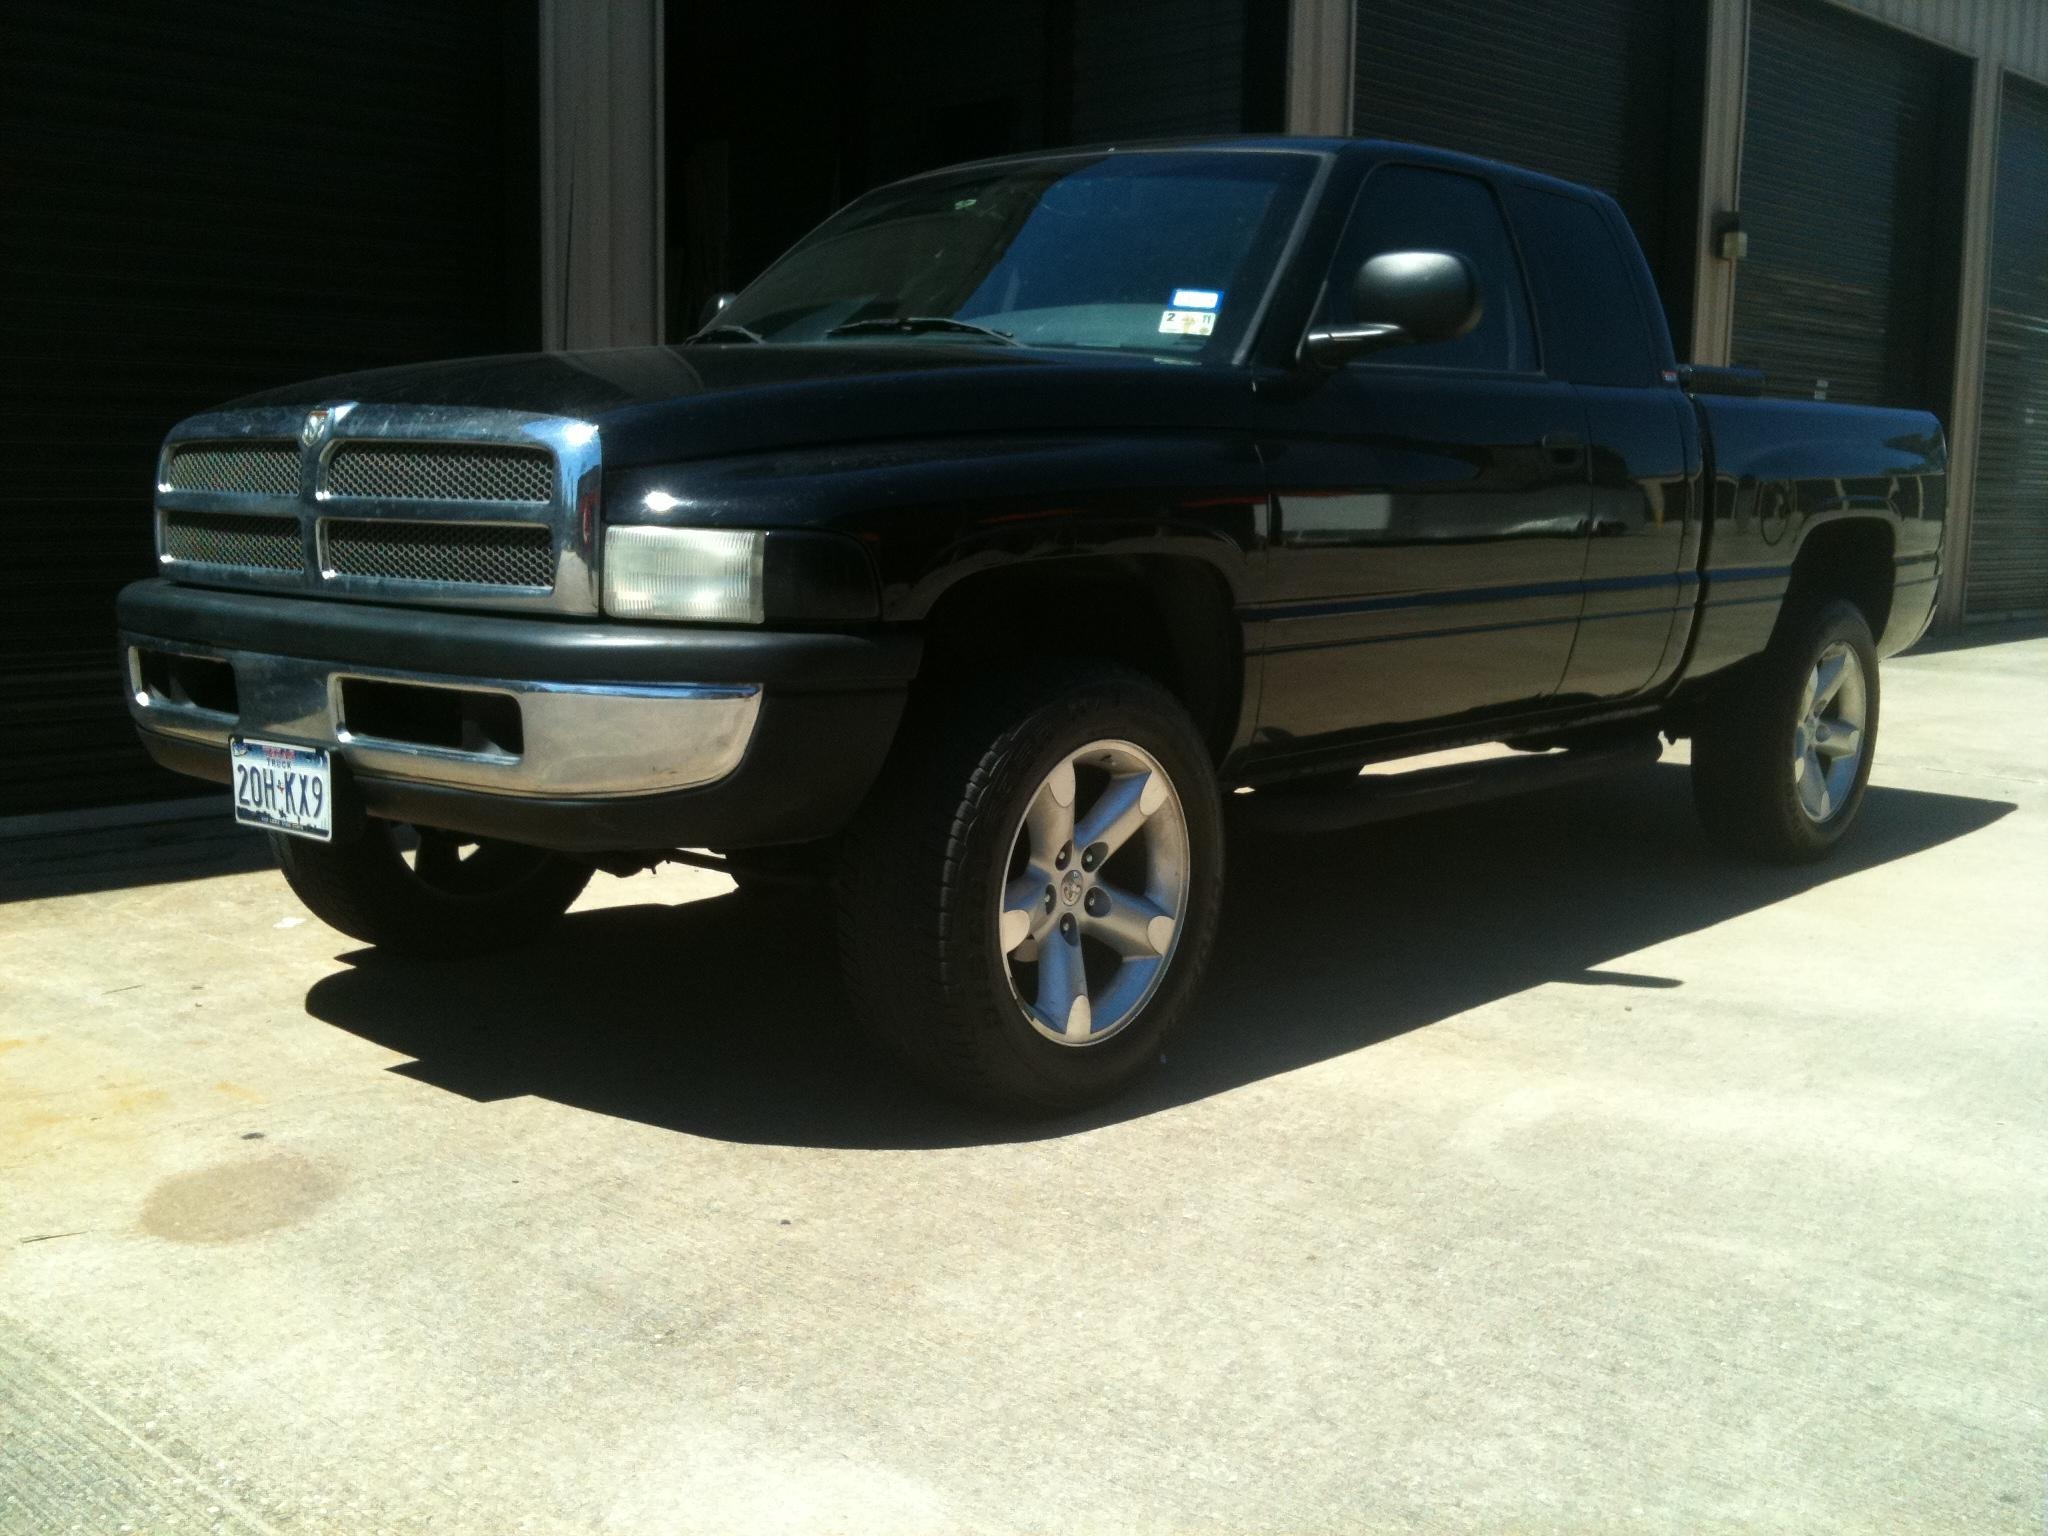 black4x4ram's 1999 Dodge Ram 1500 Quad Cab